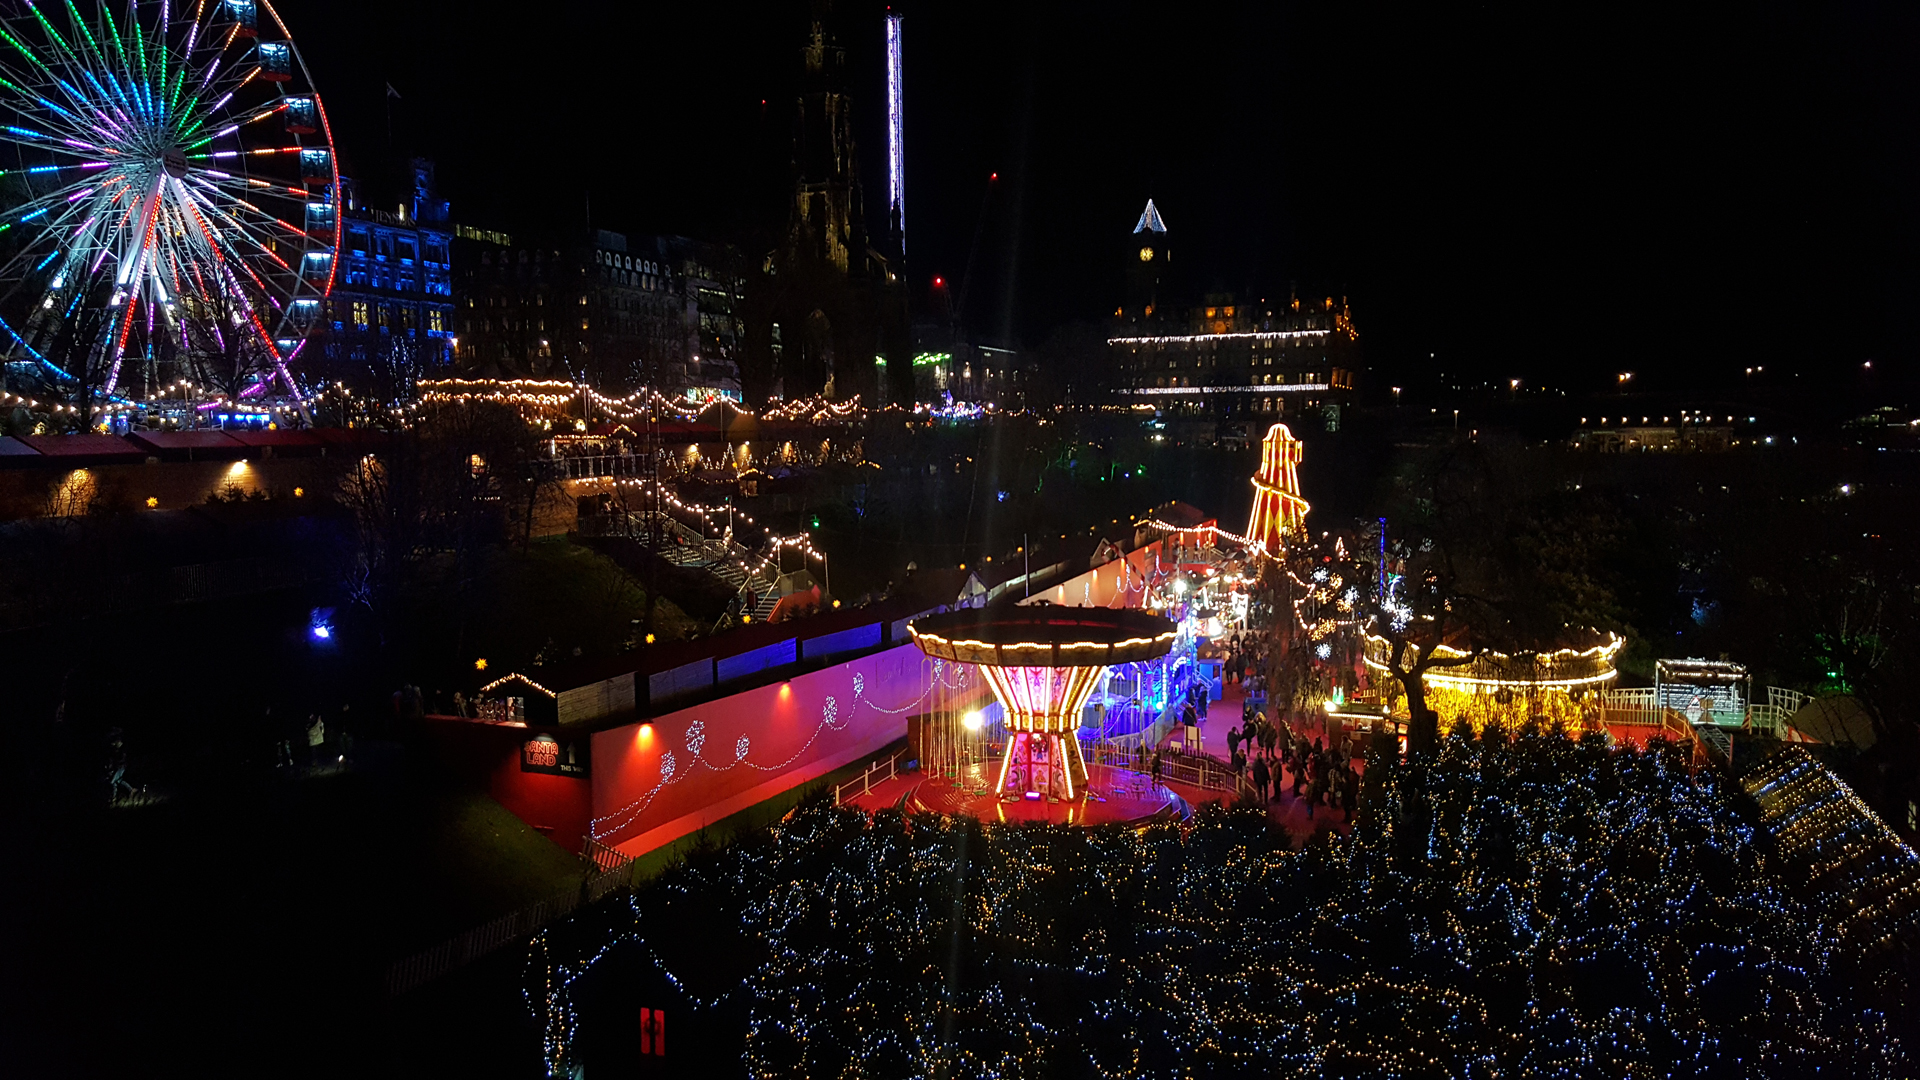 A shot overlooking Edinburgh's Christmas market at night time.